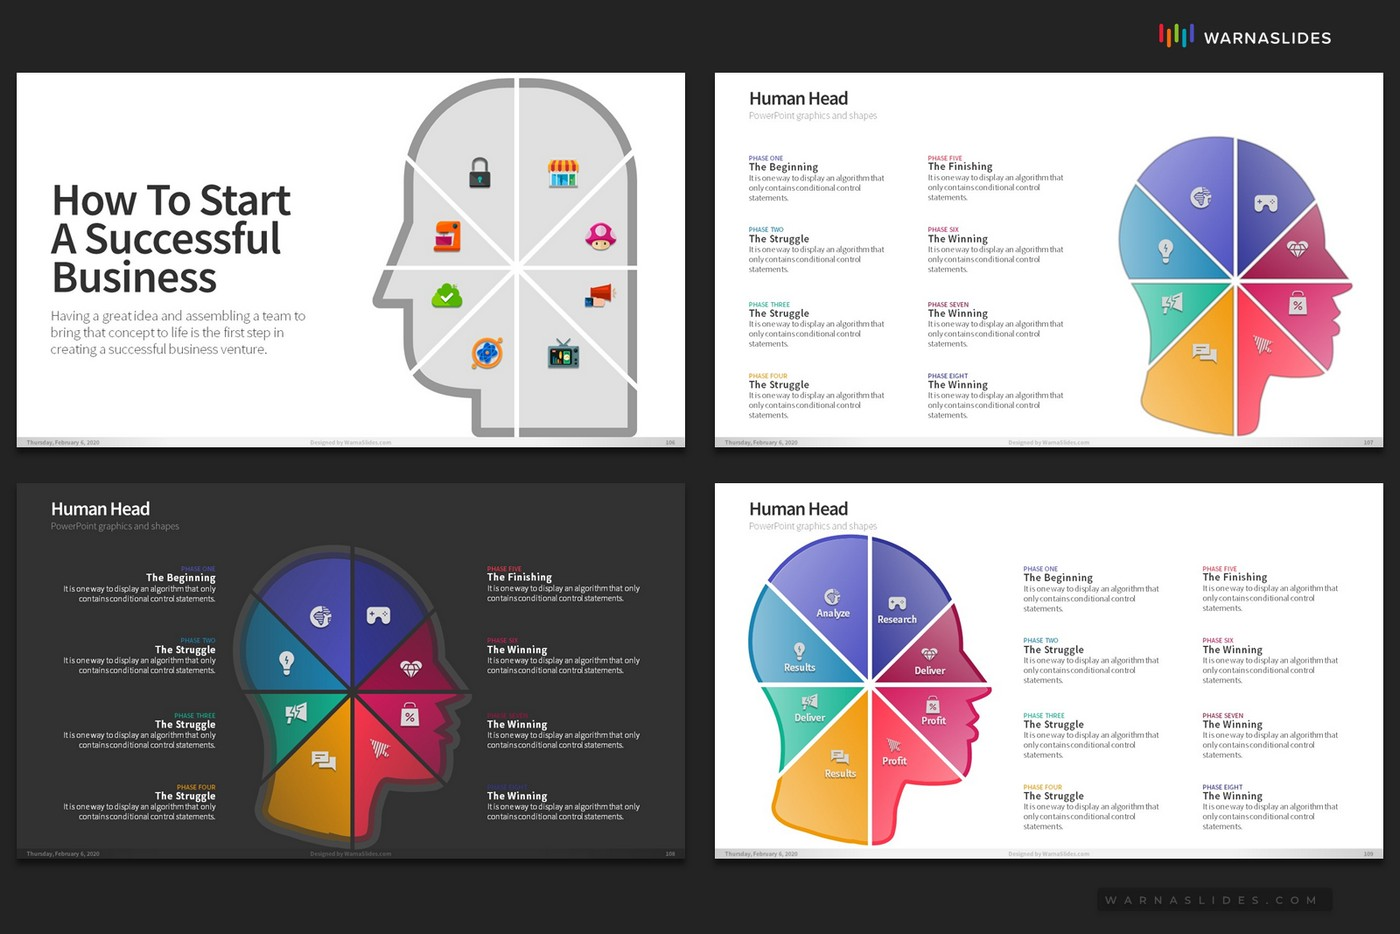 Human-Head-Ideas-Brainstorm-PowerPoint-Template-for-Business-Pitch-Deck-Professional-Creative-PowerPoint-Icons-021